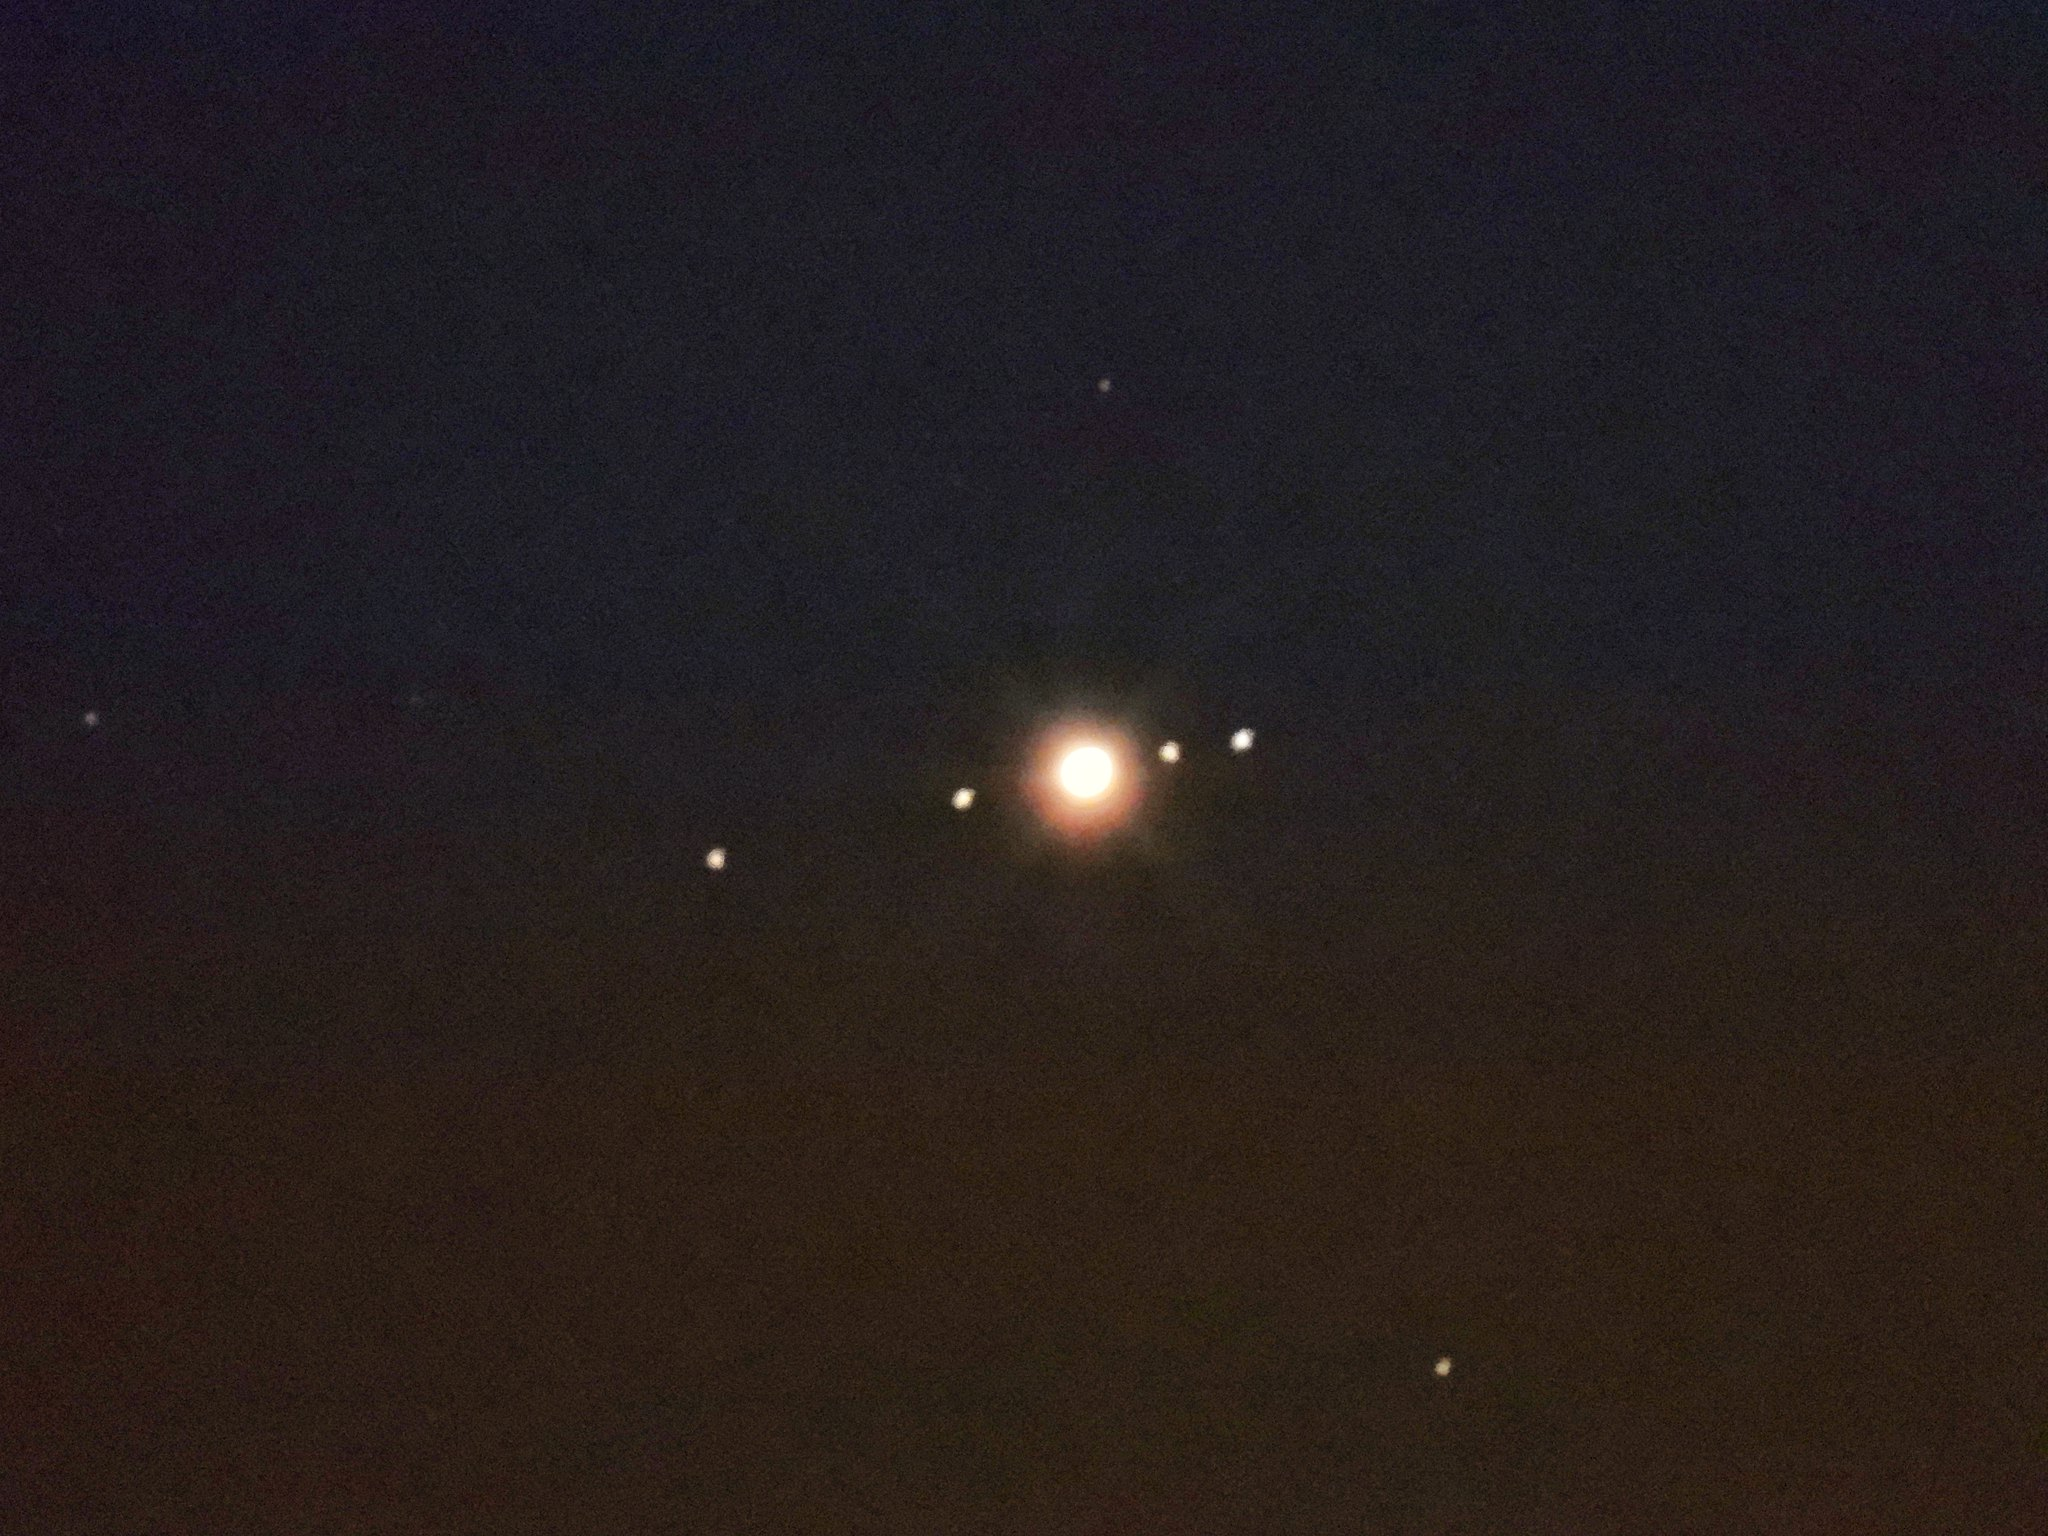 This is my image of Jupiter and its four moons. I took this with a Nikon P1000 Camera.